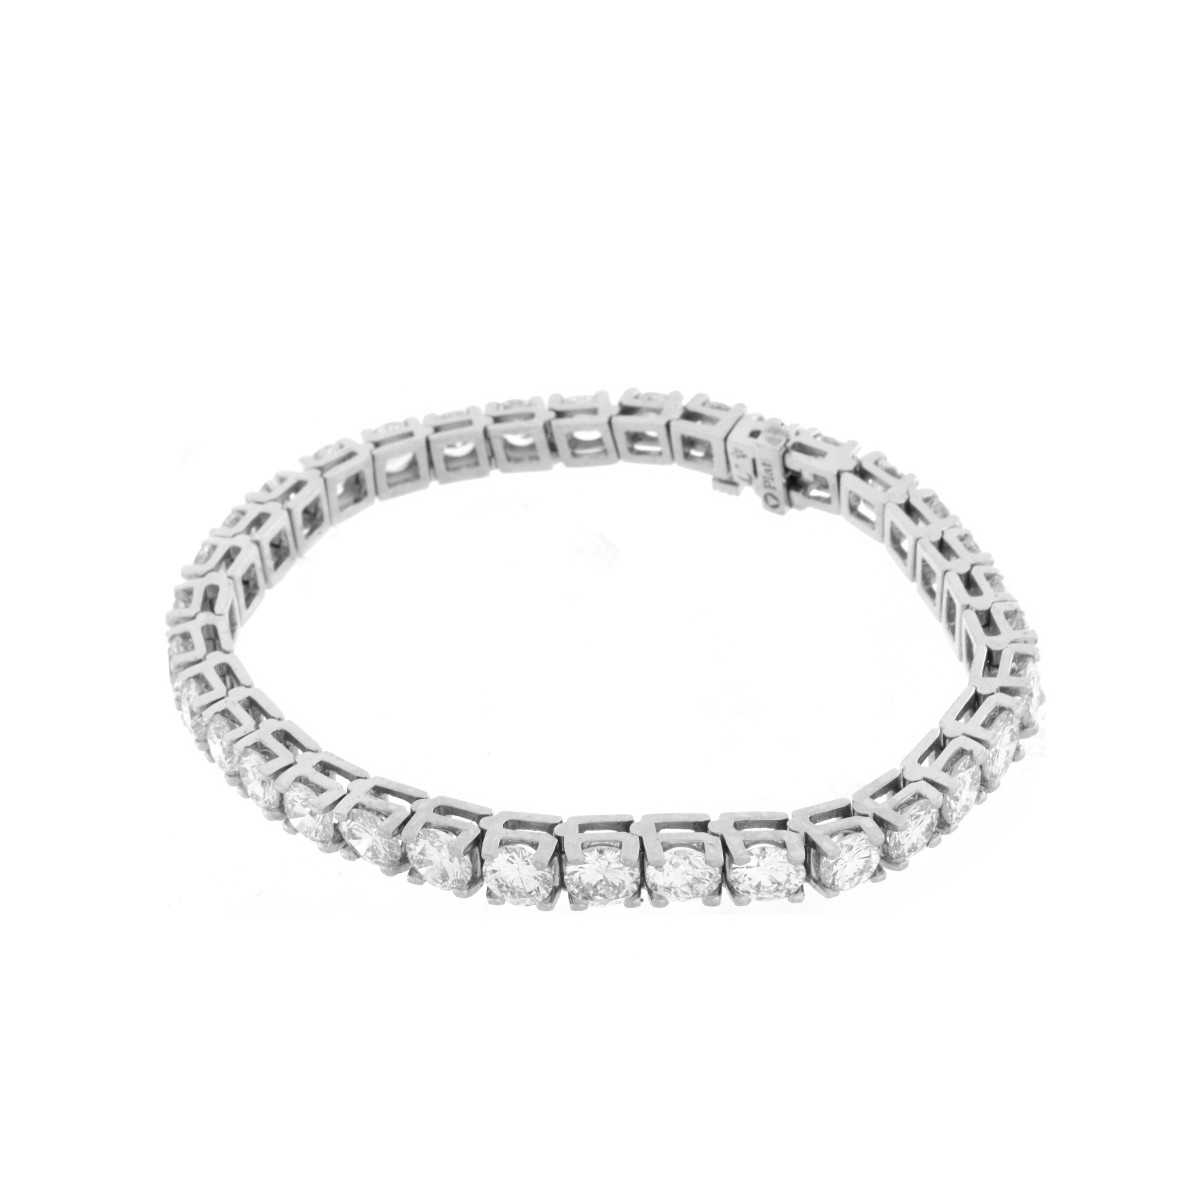 Diamond and Platinum Bracelet